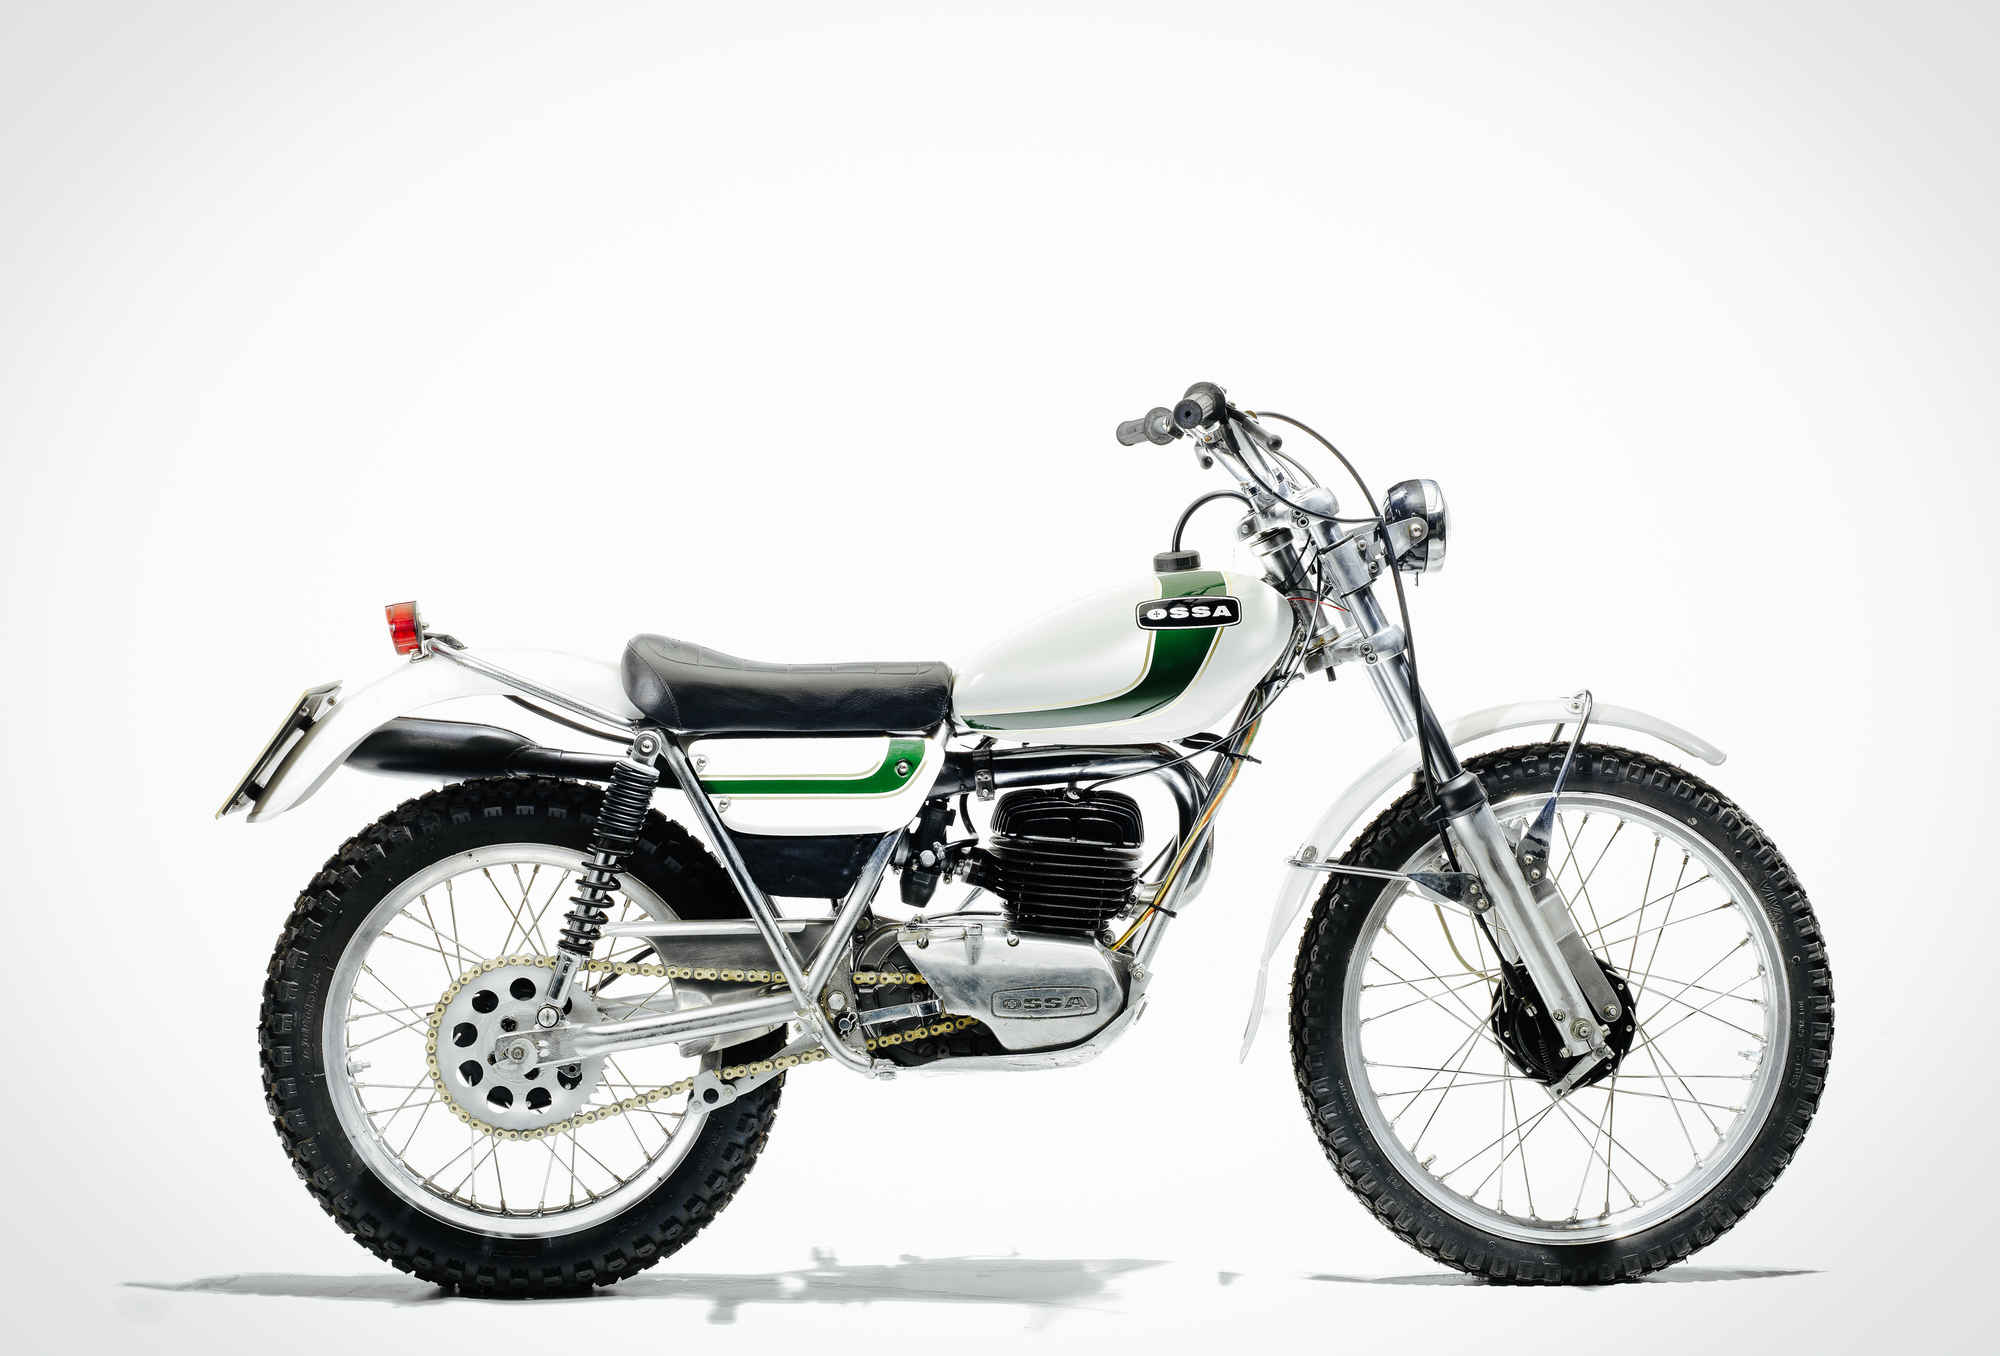 1980 Ossa 250CC MAR Trials Motorcycle